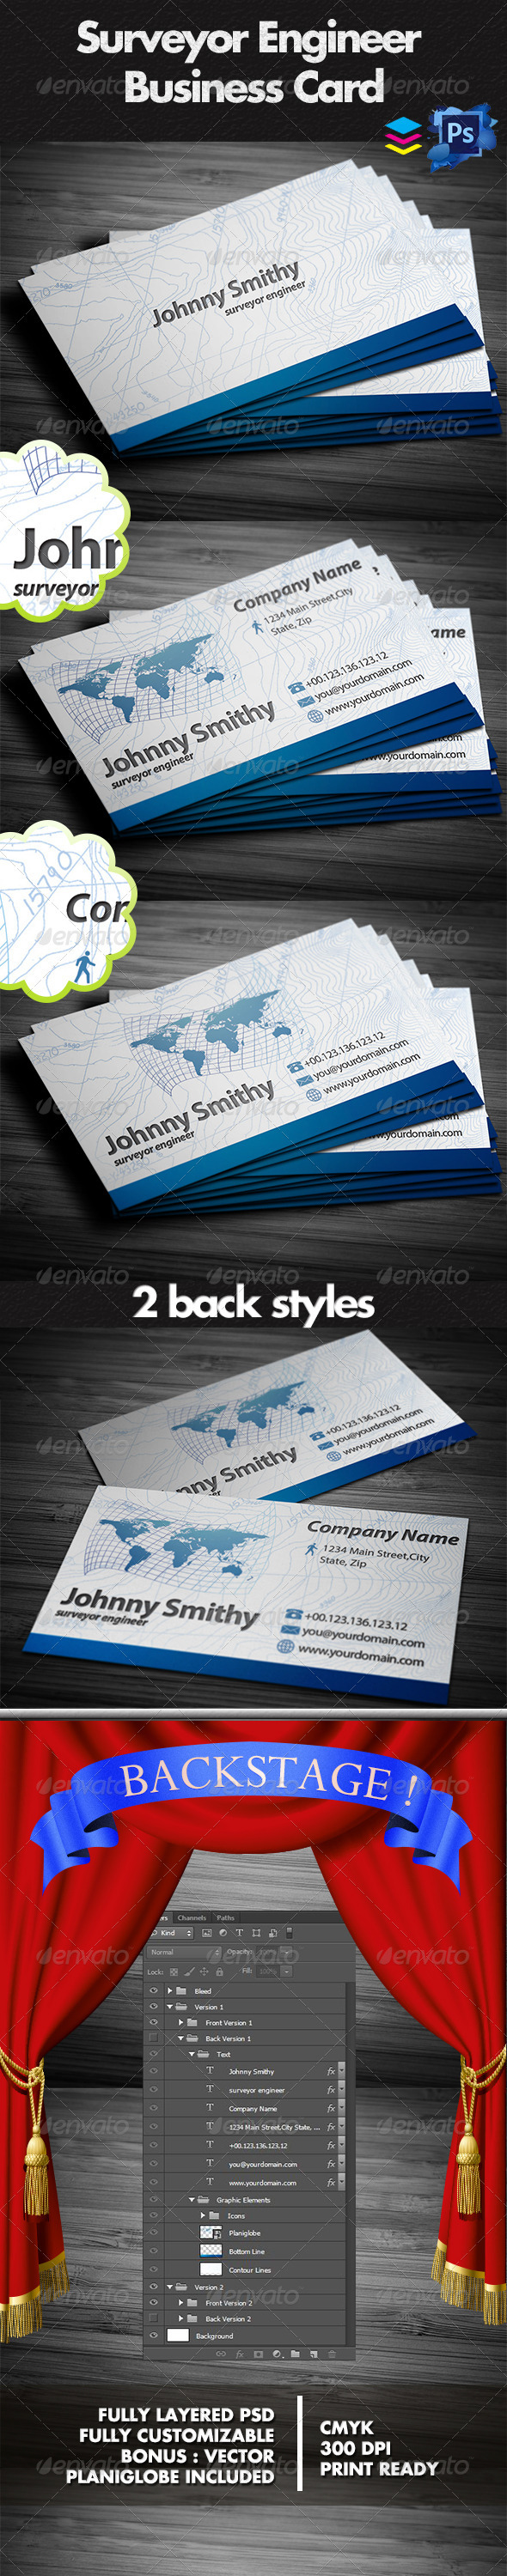 Surveyor business cards graphicriver professional land surveyor surveyor business cards graphicriver professional land surveyor business card summary info fully layered psd files well organize easy customizable and reheart Image collections